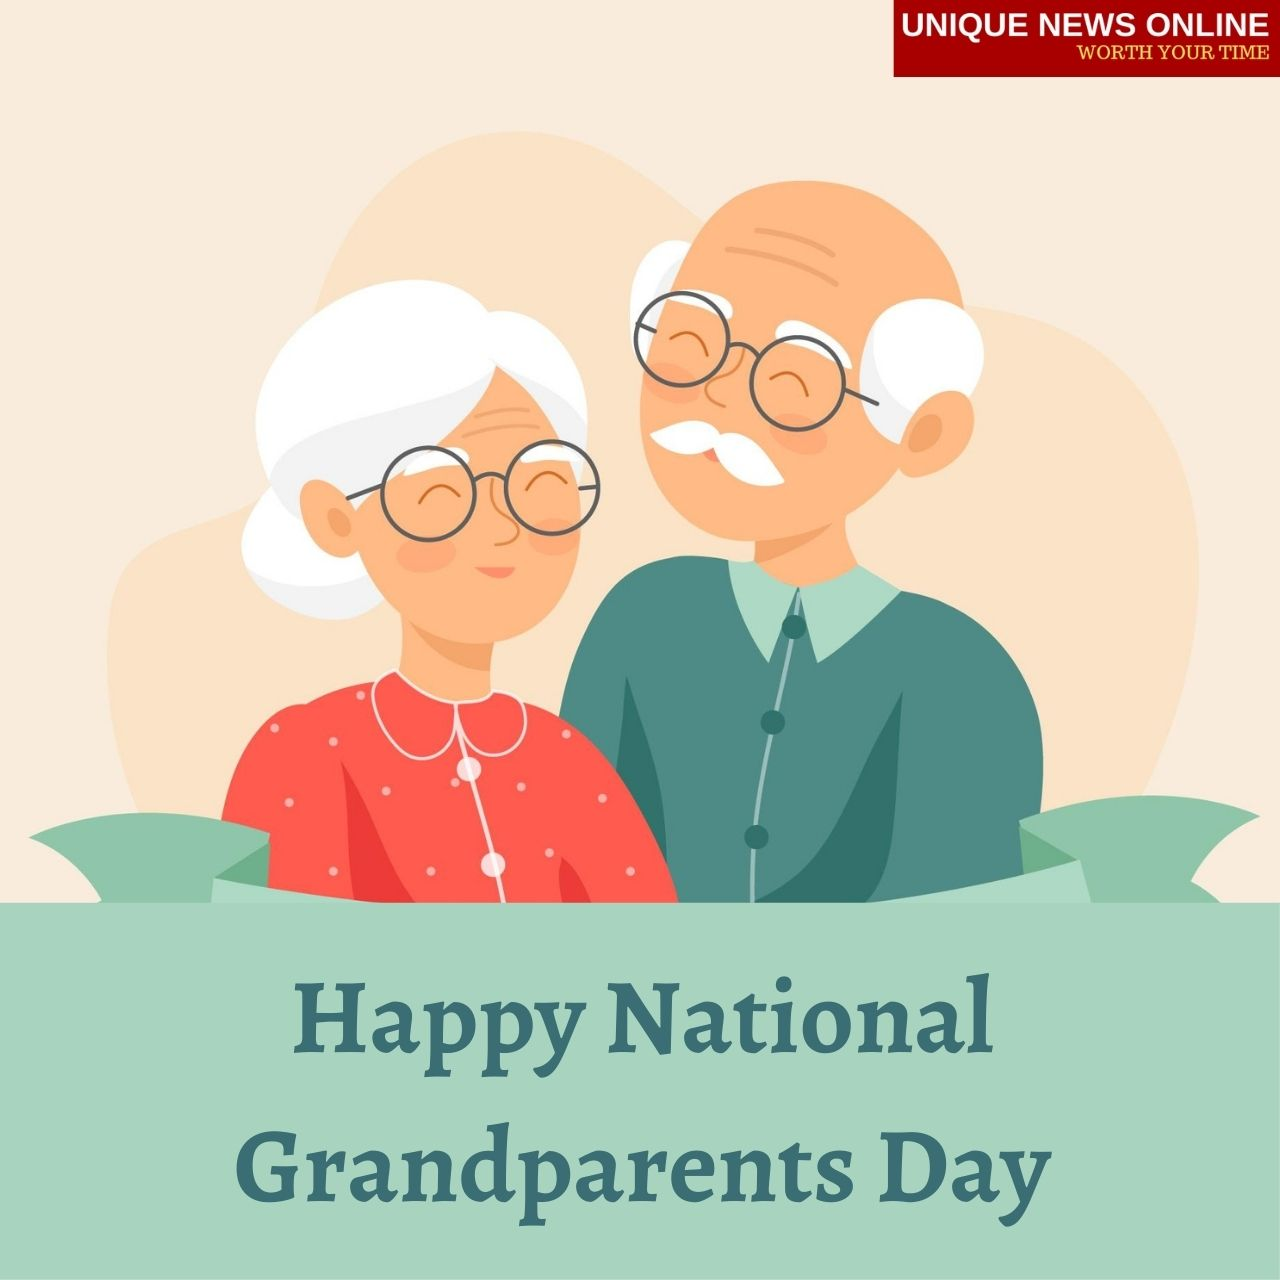 National Grandparents Day (US) 2021: Wishes, HD Images, Quotes, Messages, Stickers, Clipart, and Greetings to Share